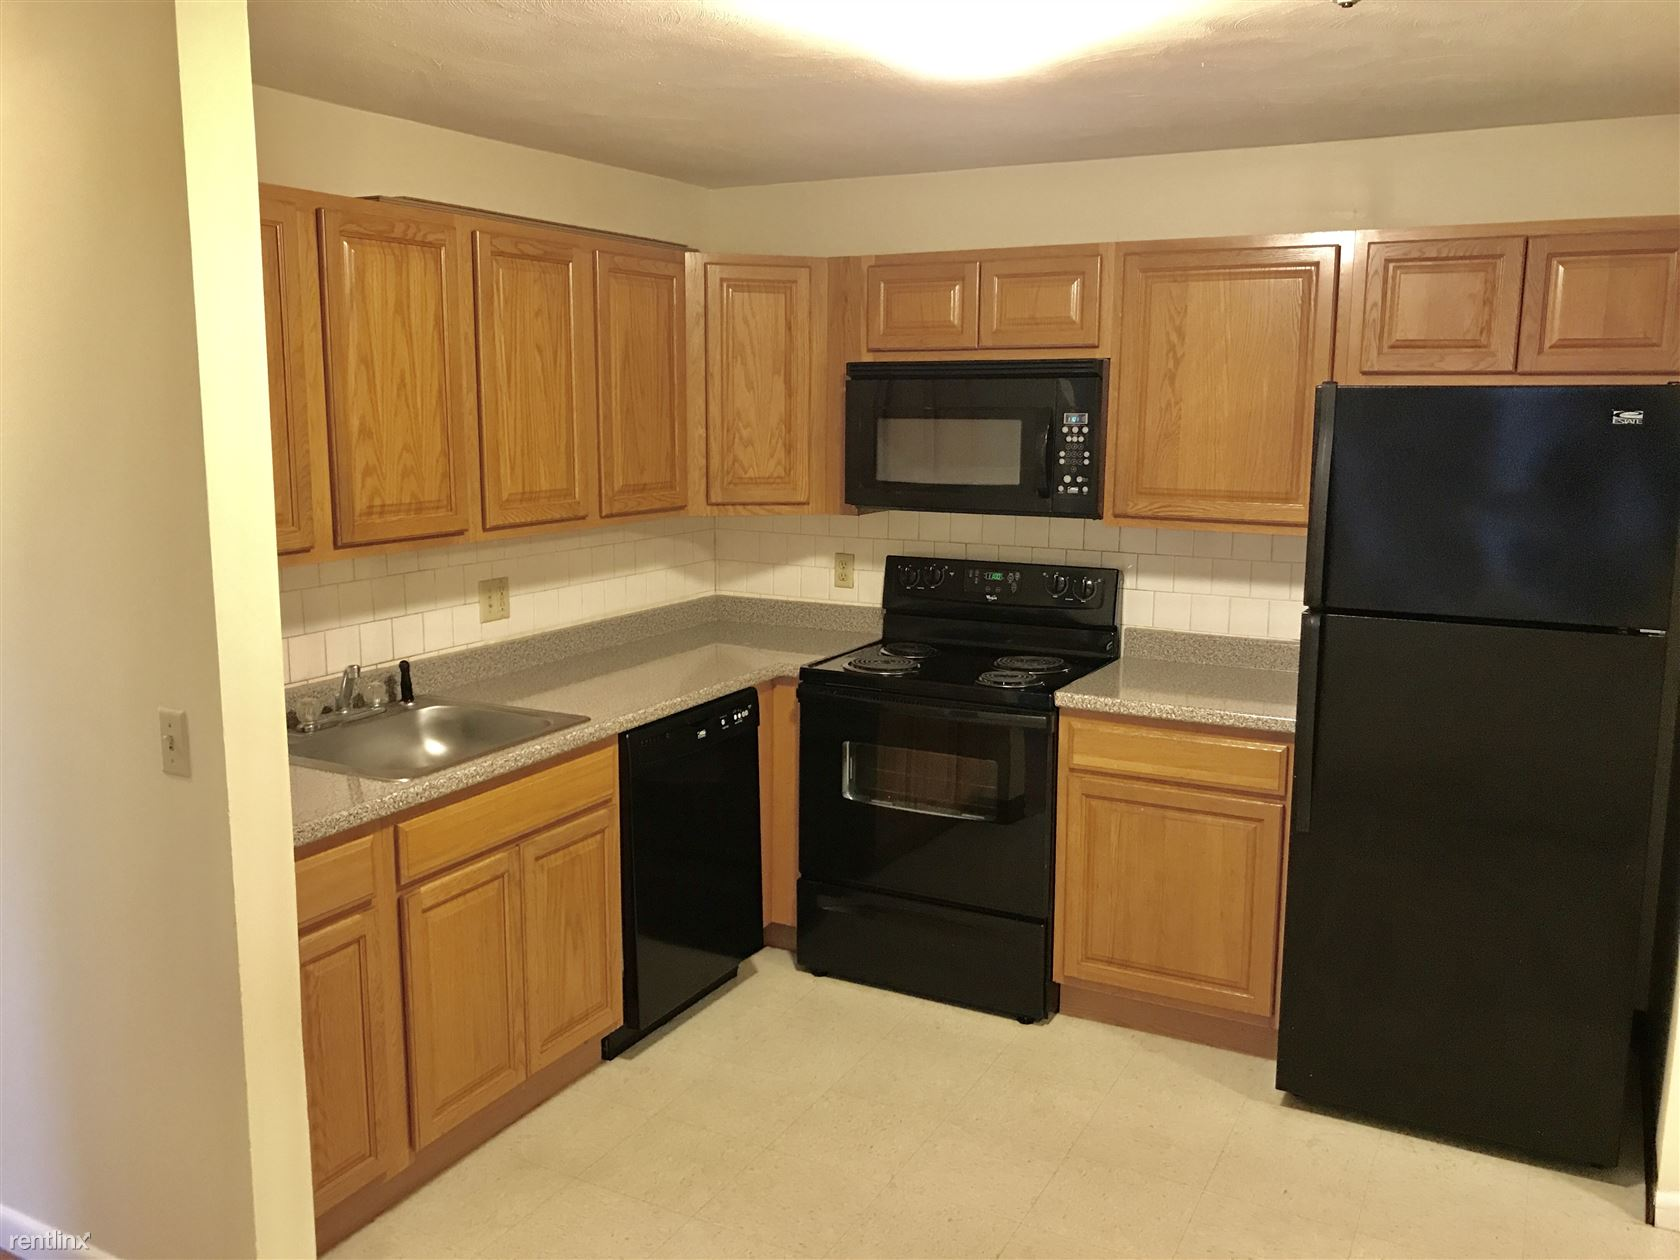 740 Central St, Leominster, MA - $1,250